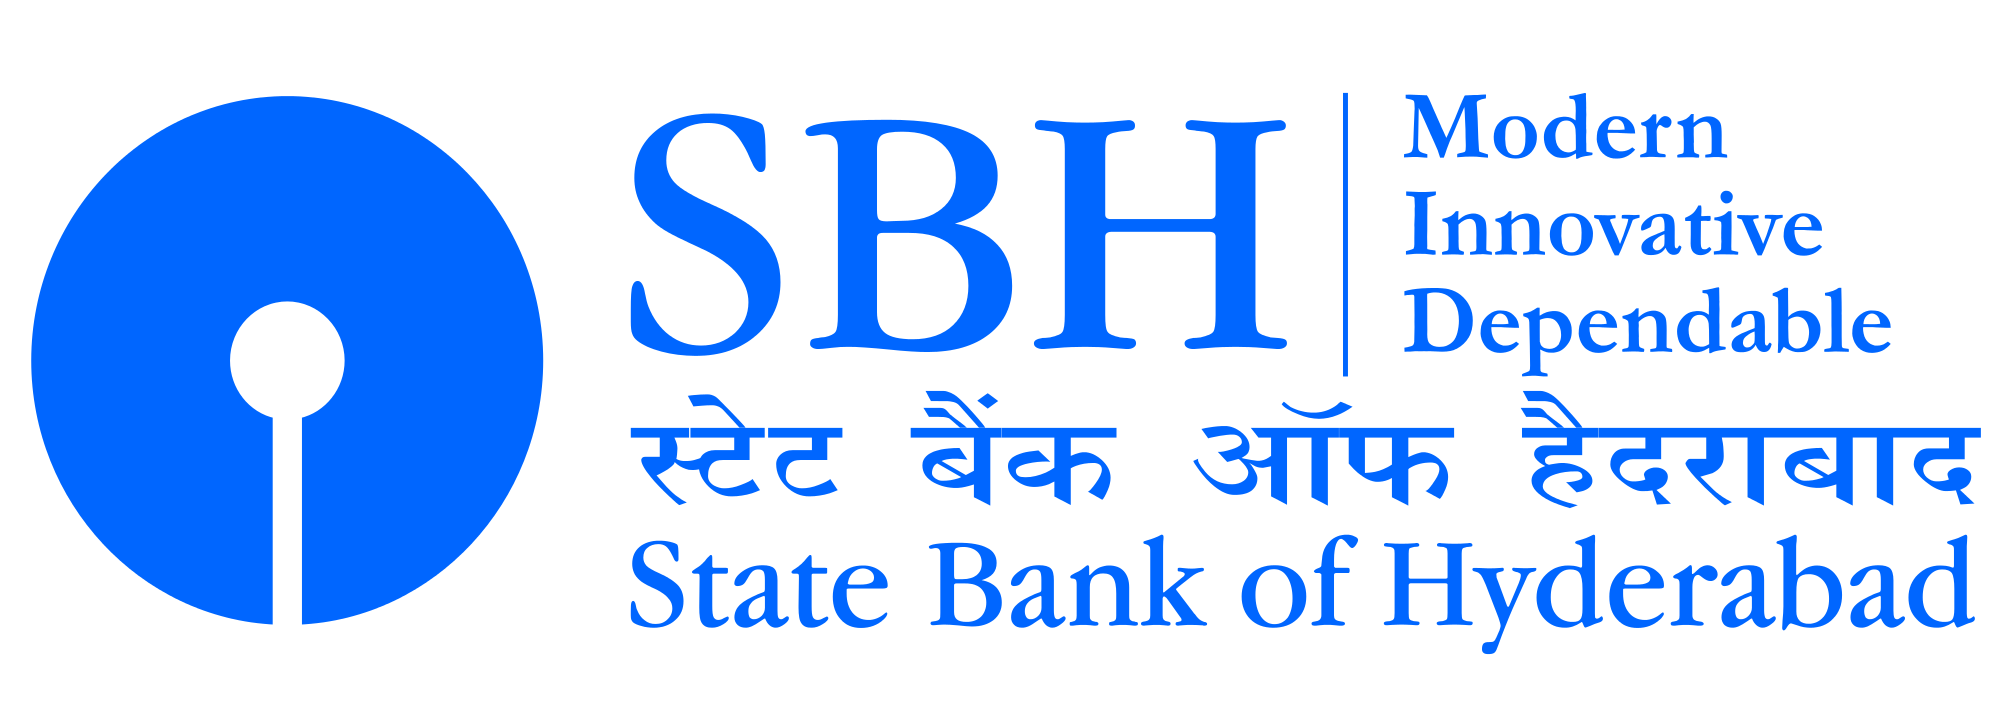 state bank india state bank hyderabad recruitment job openings for #33220